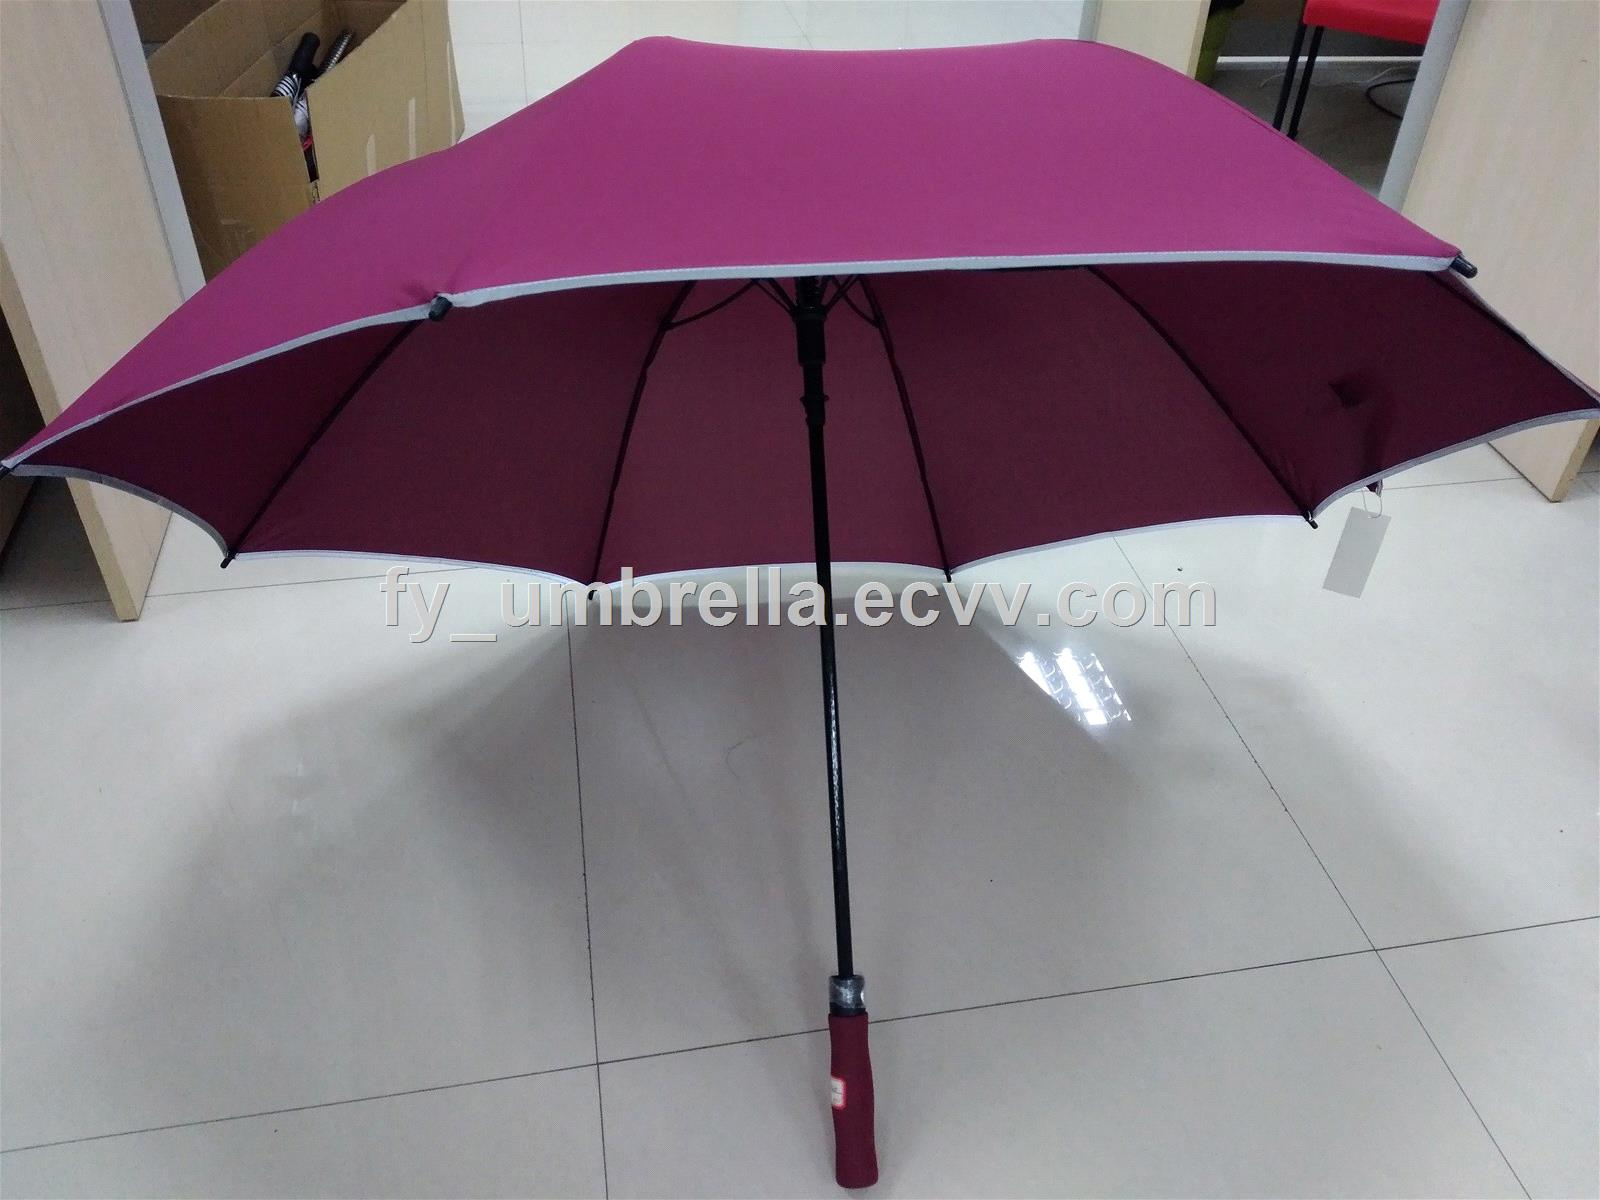 df4b1de9e845 Auto Open Golf Umbrella